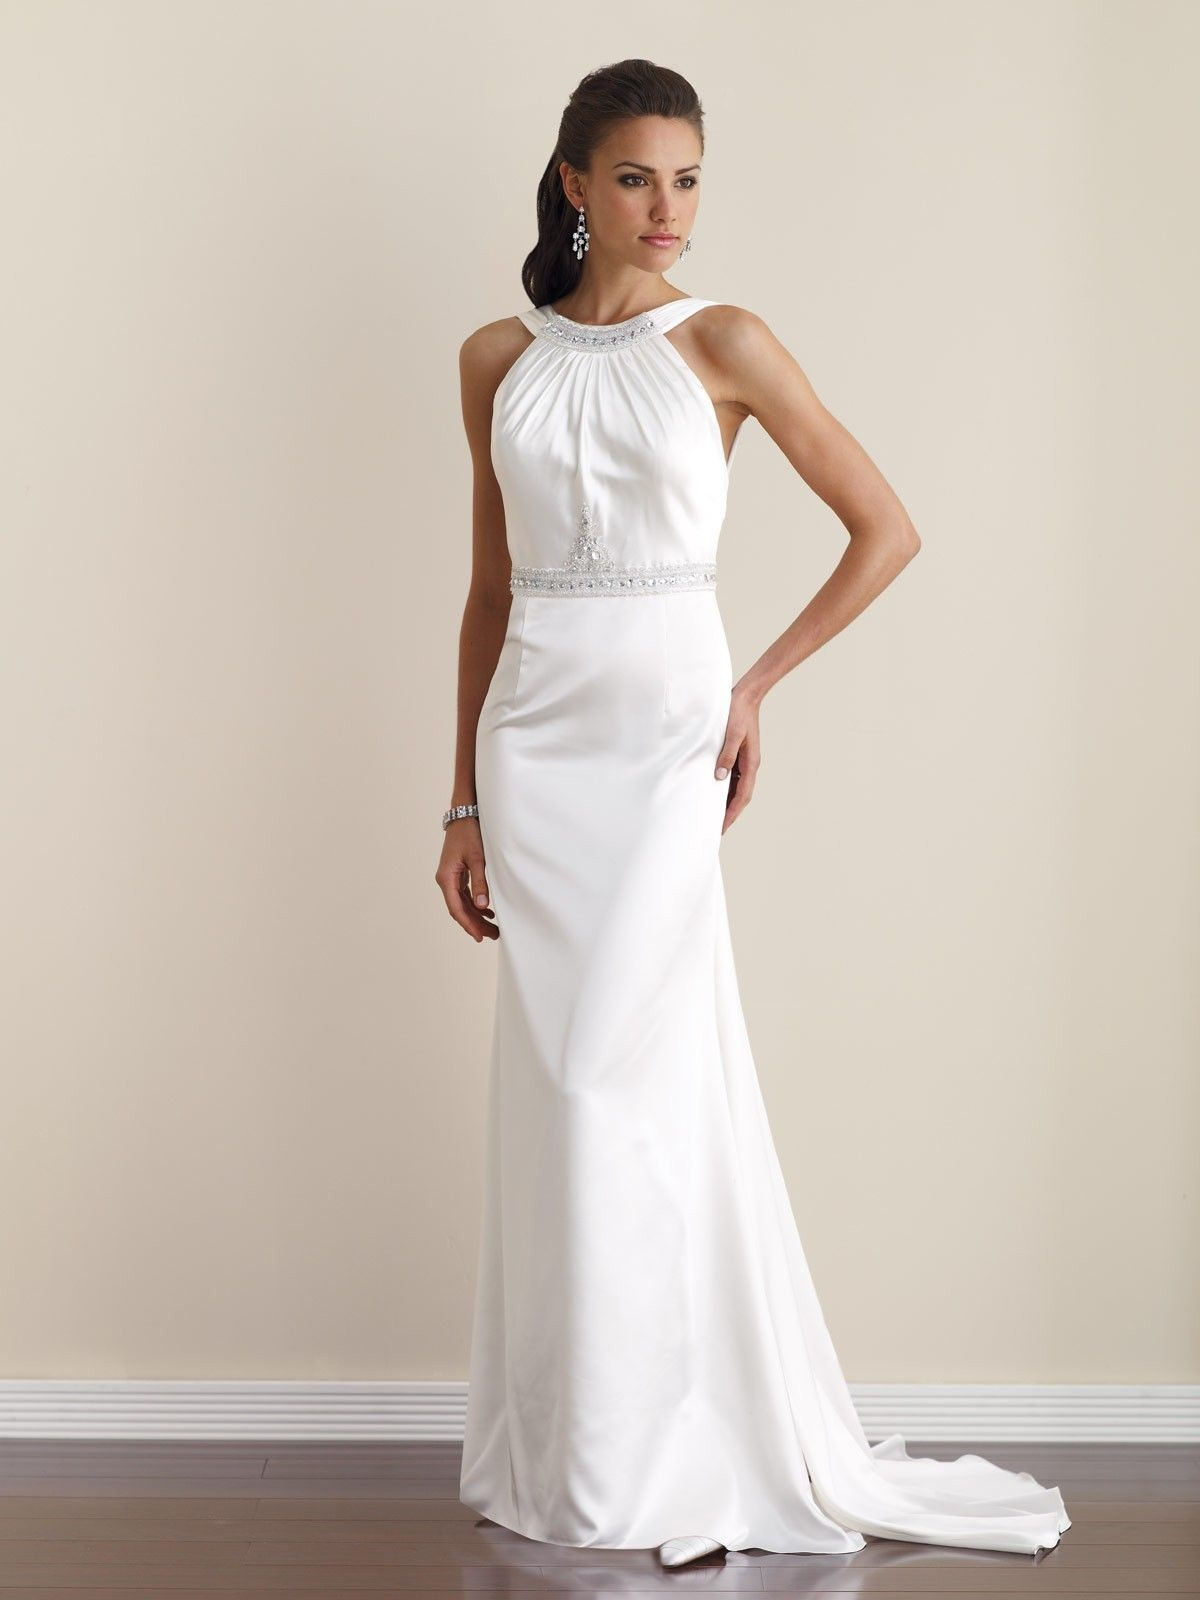 Casual wedding dresses with sleeves  Elegant High Neck Beaded Sheath Informal Simple Wedding Dress W